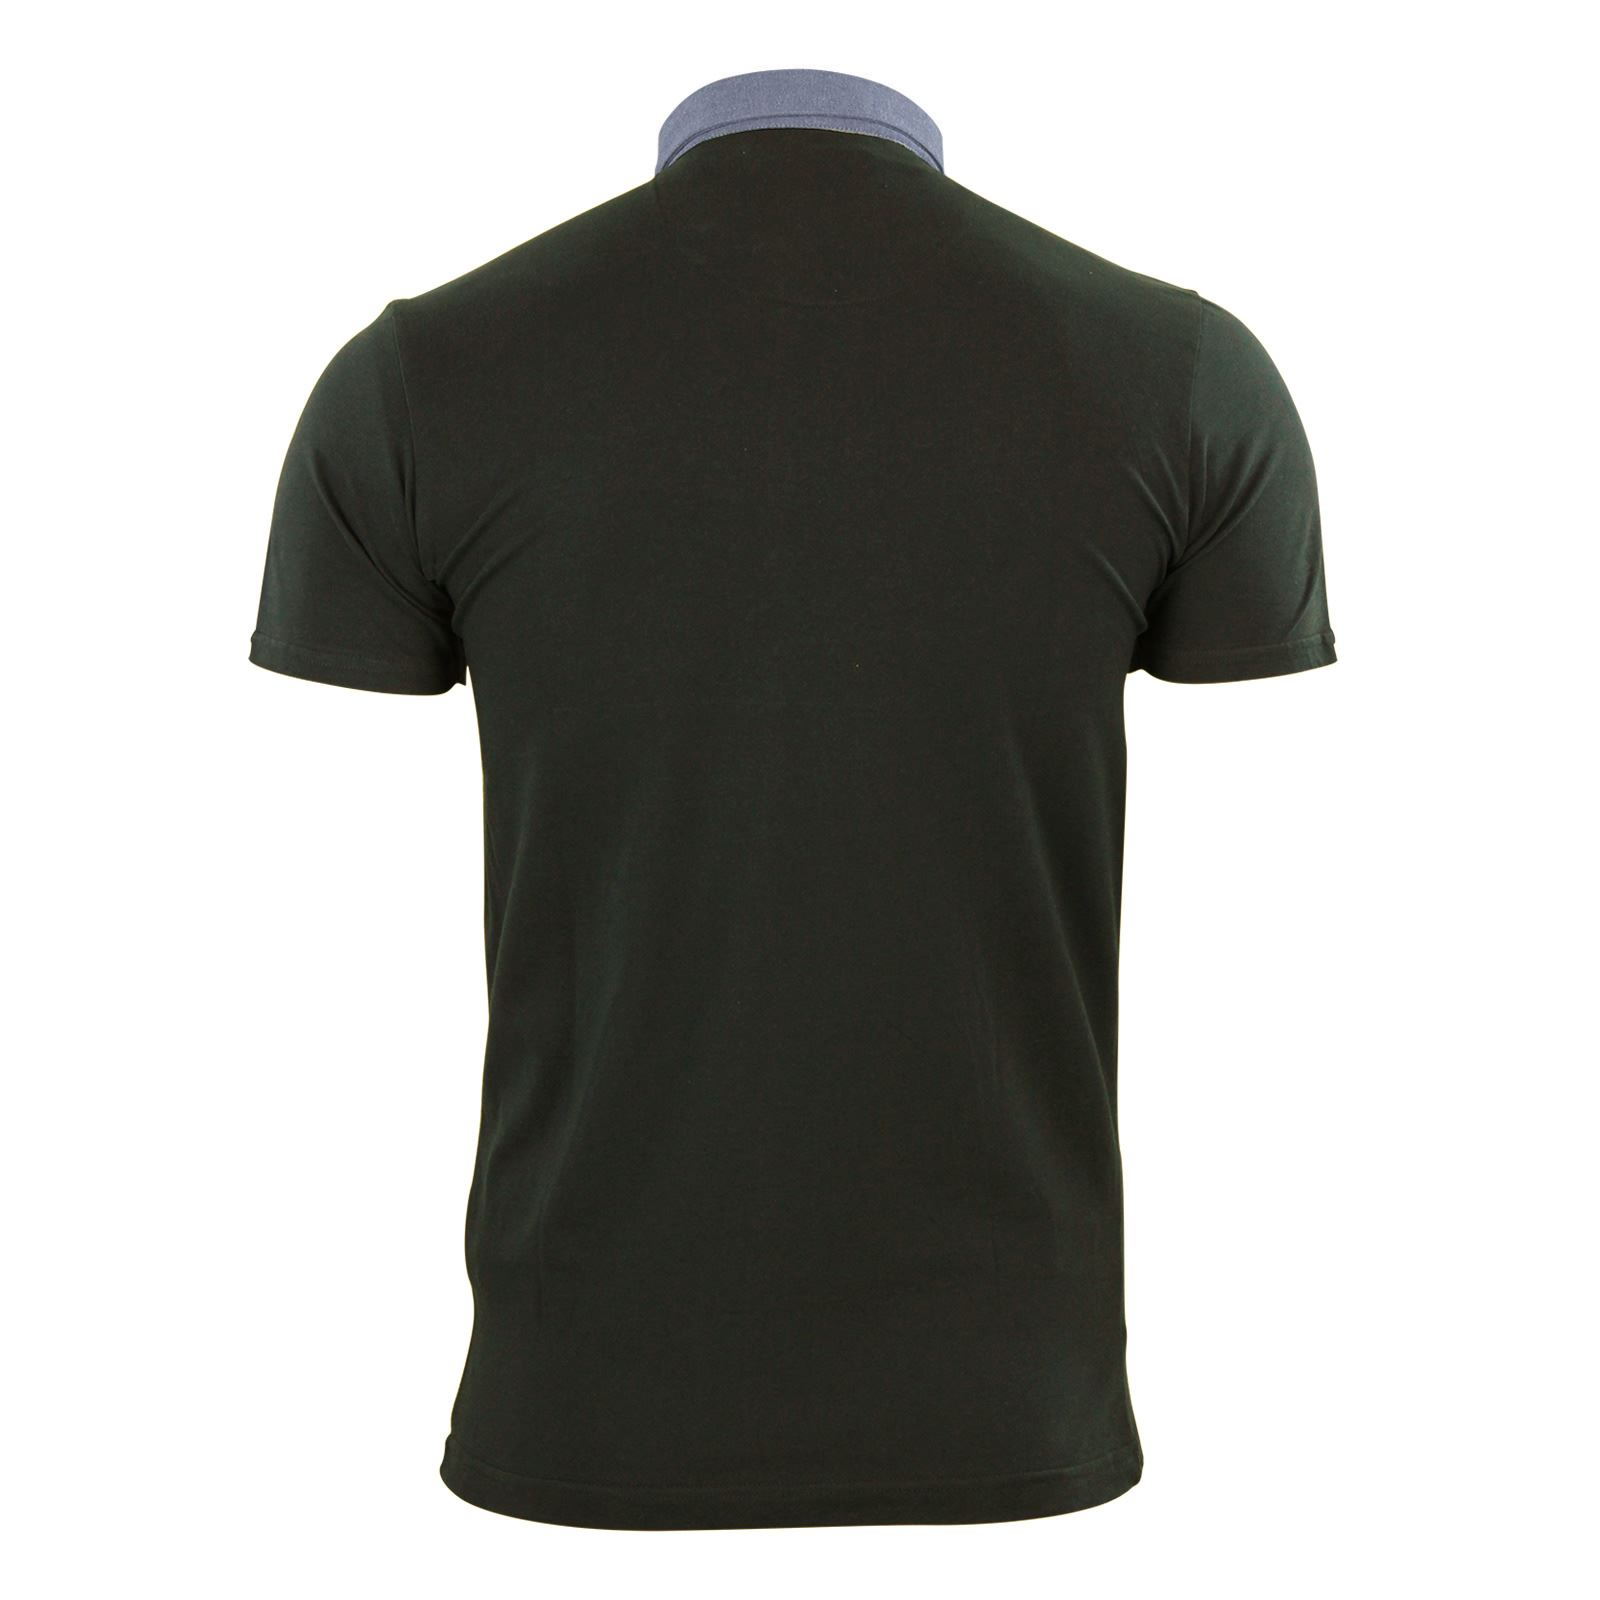 Mens-Polo-T-Shirt-Brave-Soul-Glover-Cotton-Collared-Short-Sleeve-Casual-Top thumbnail 34